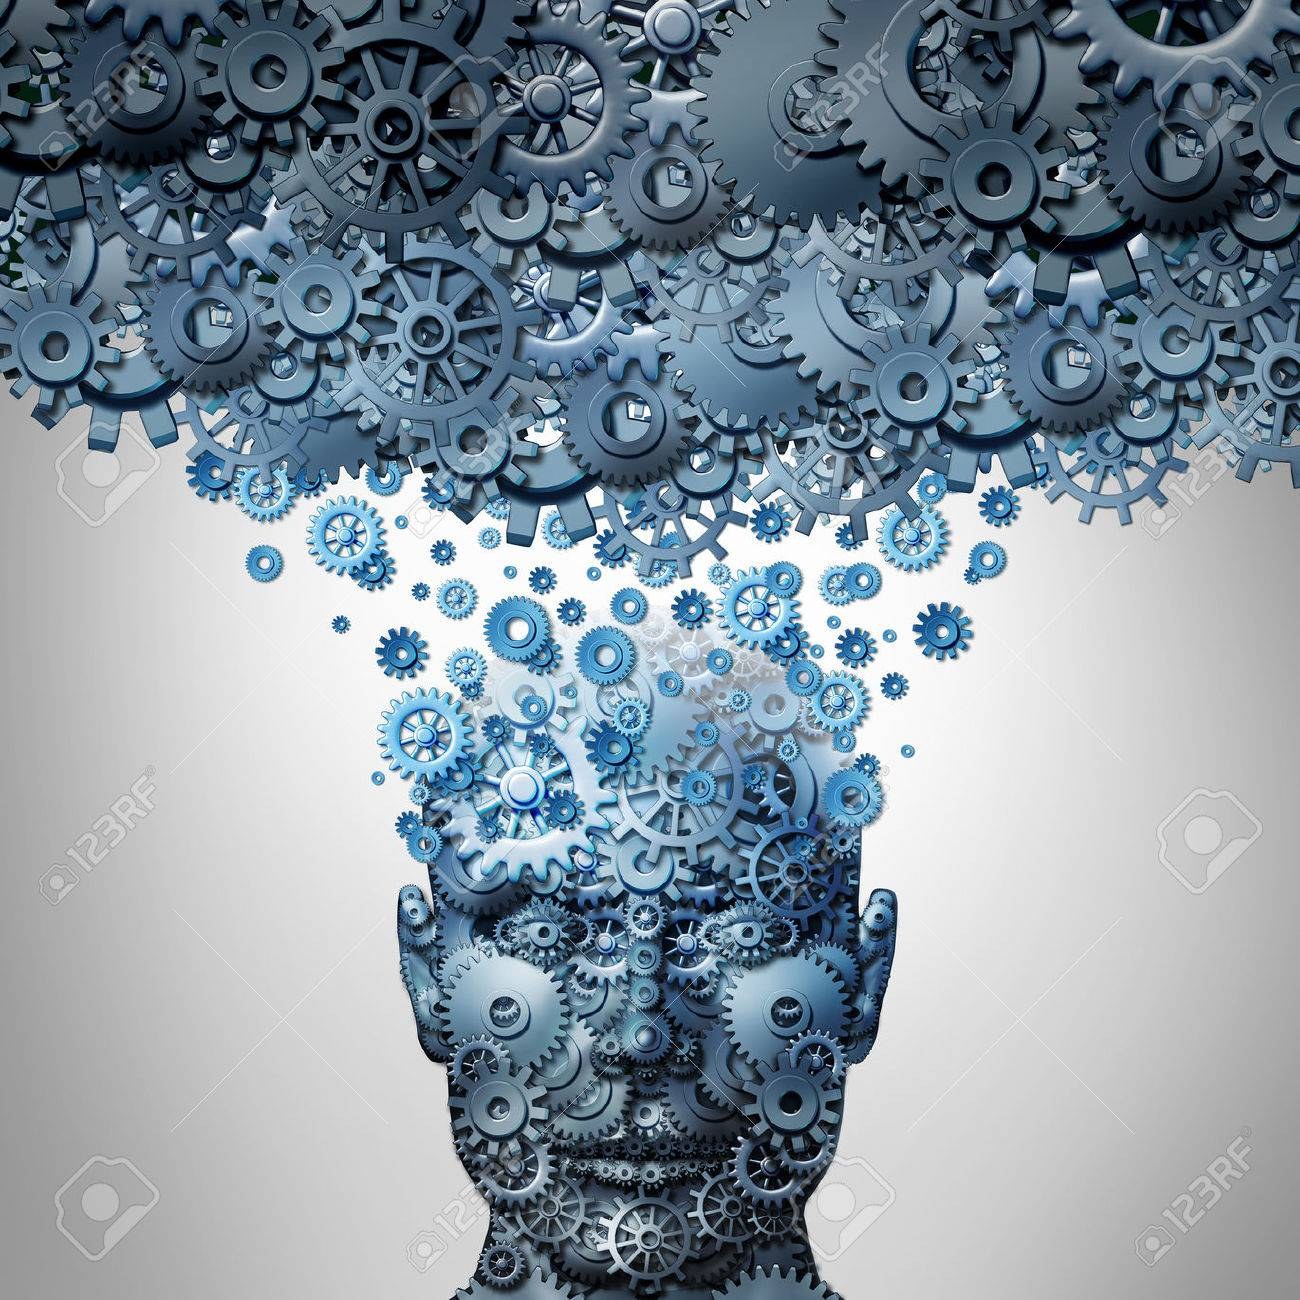 Image result for royalty free images of your mind